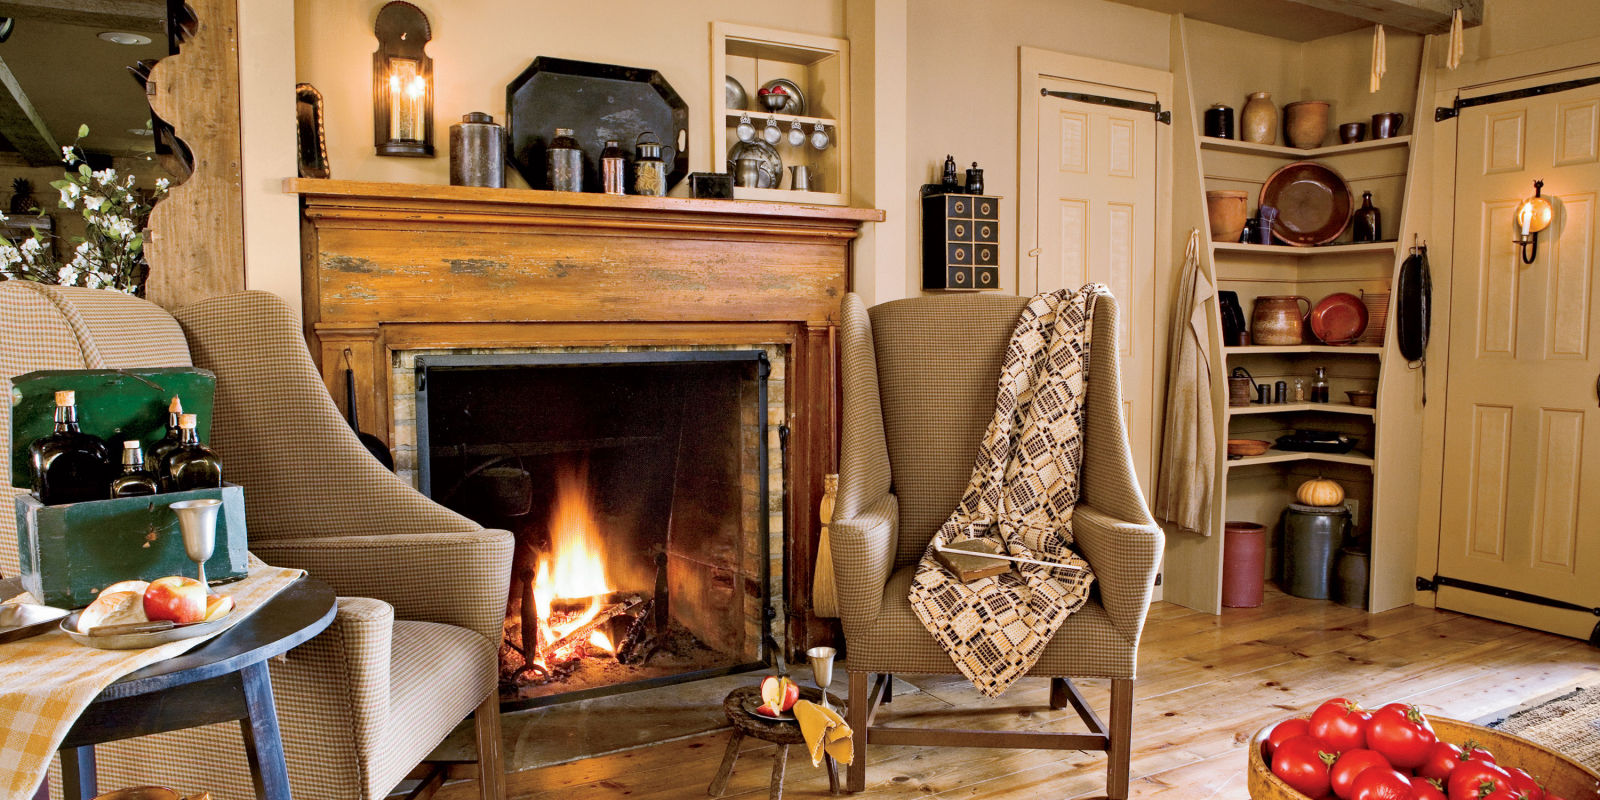 Home Fireplace Designs 40 Fireplace Design Ideas  Fireplace Mantel Decorating Ideas